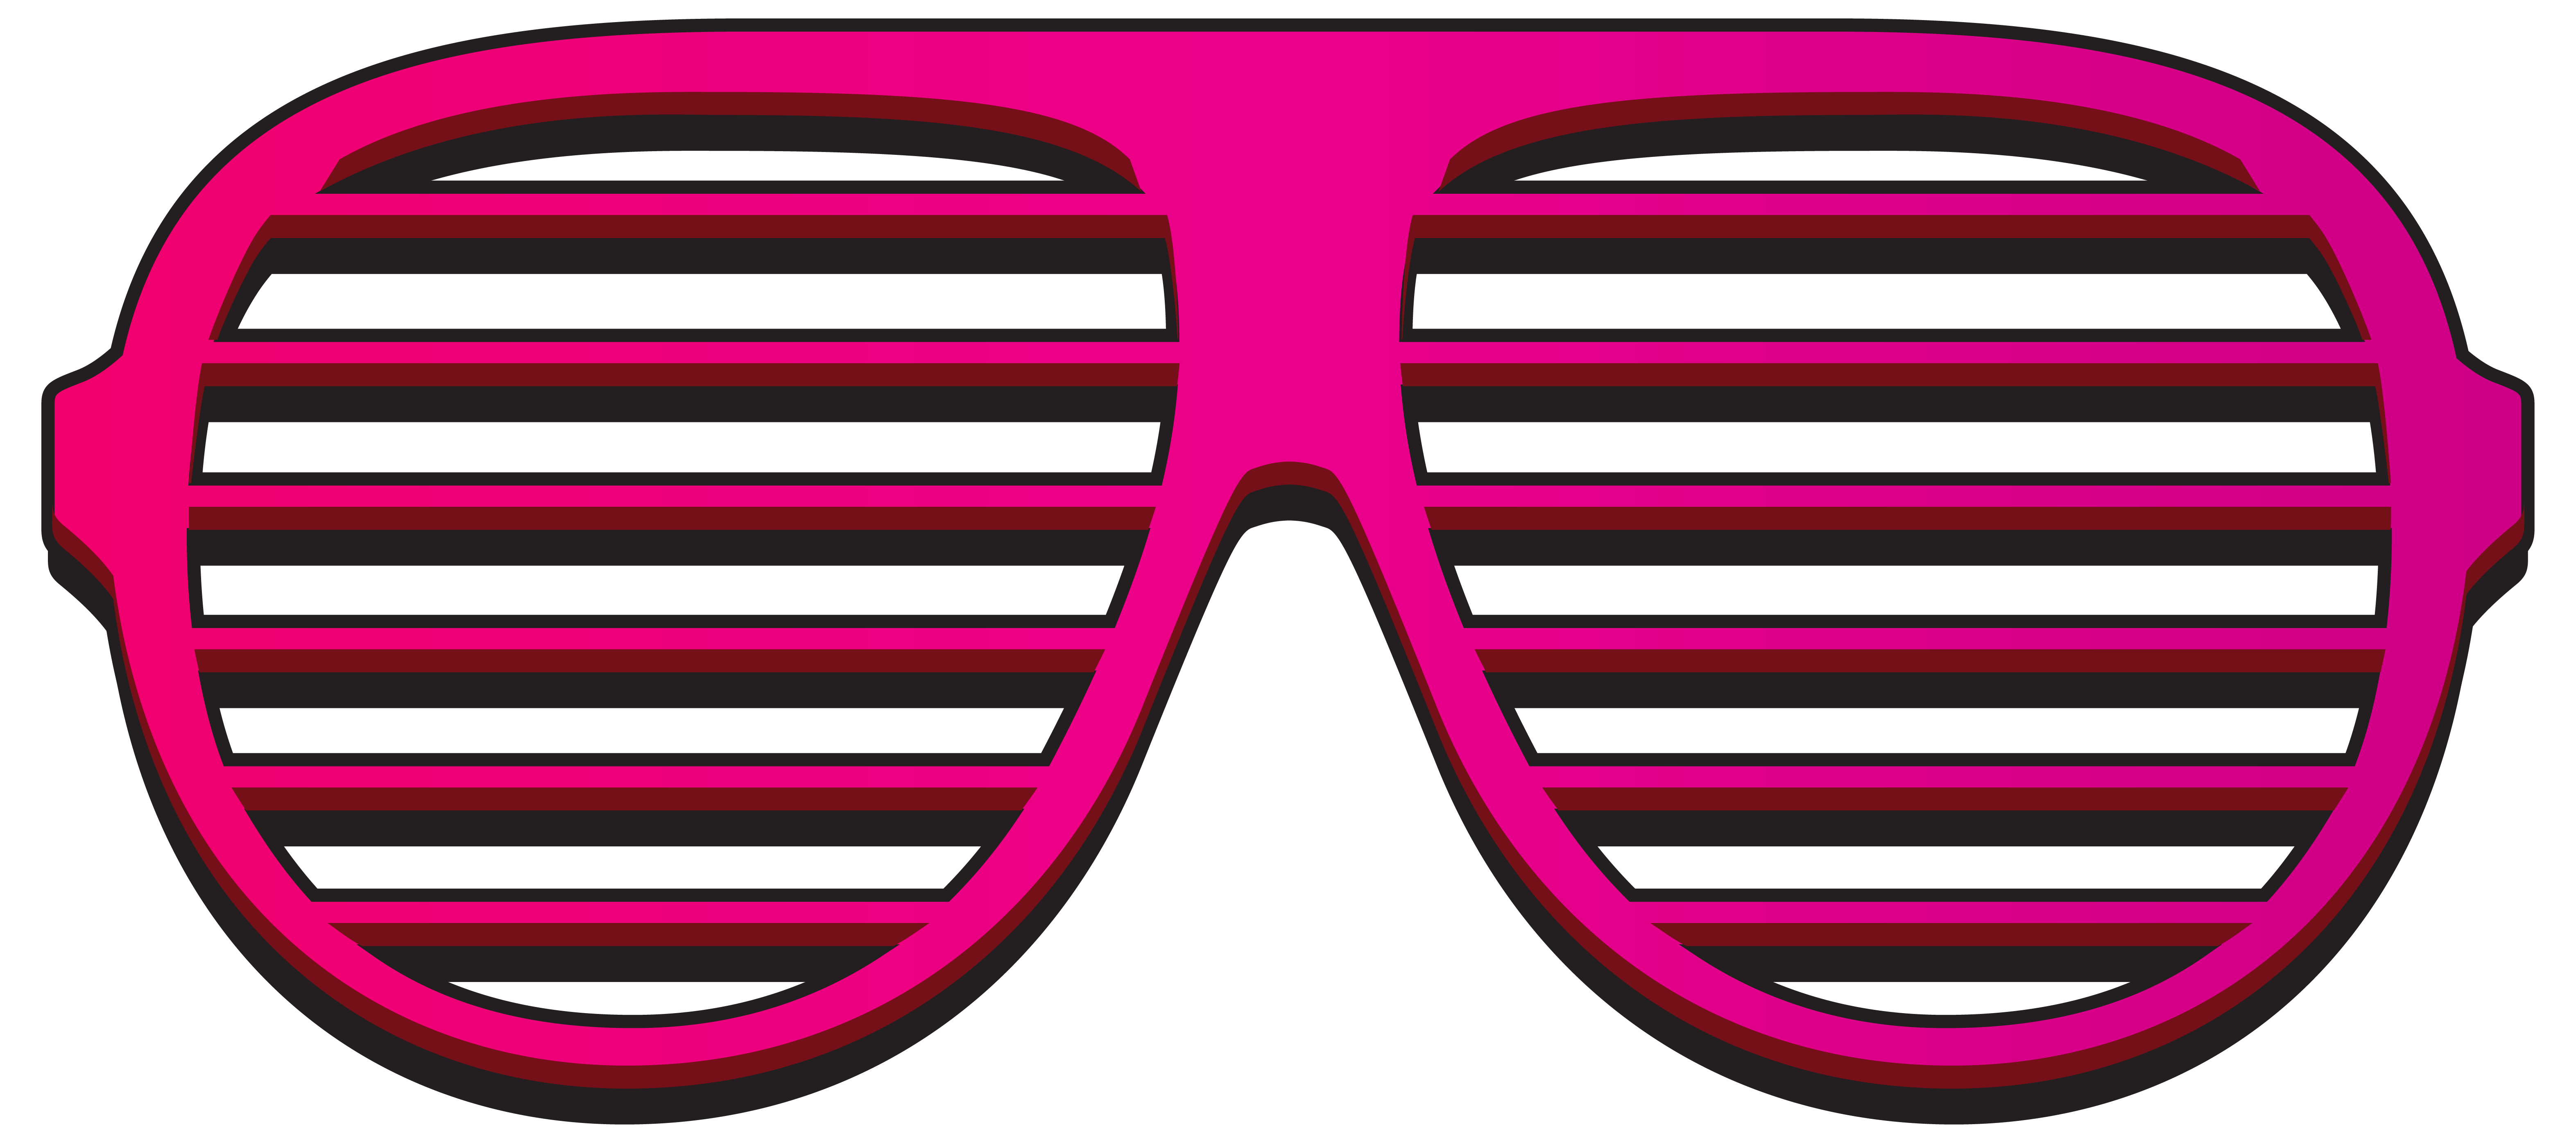 Goggles clipart pink. Shutter shades png image